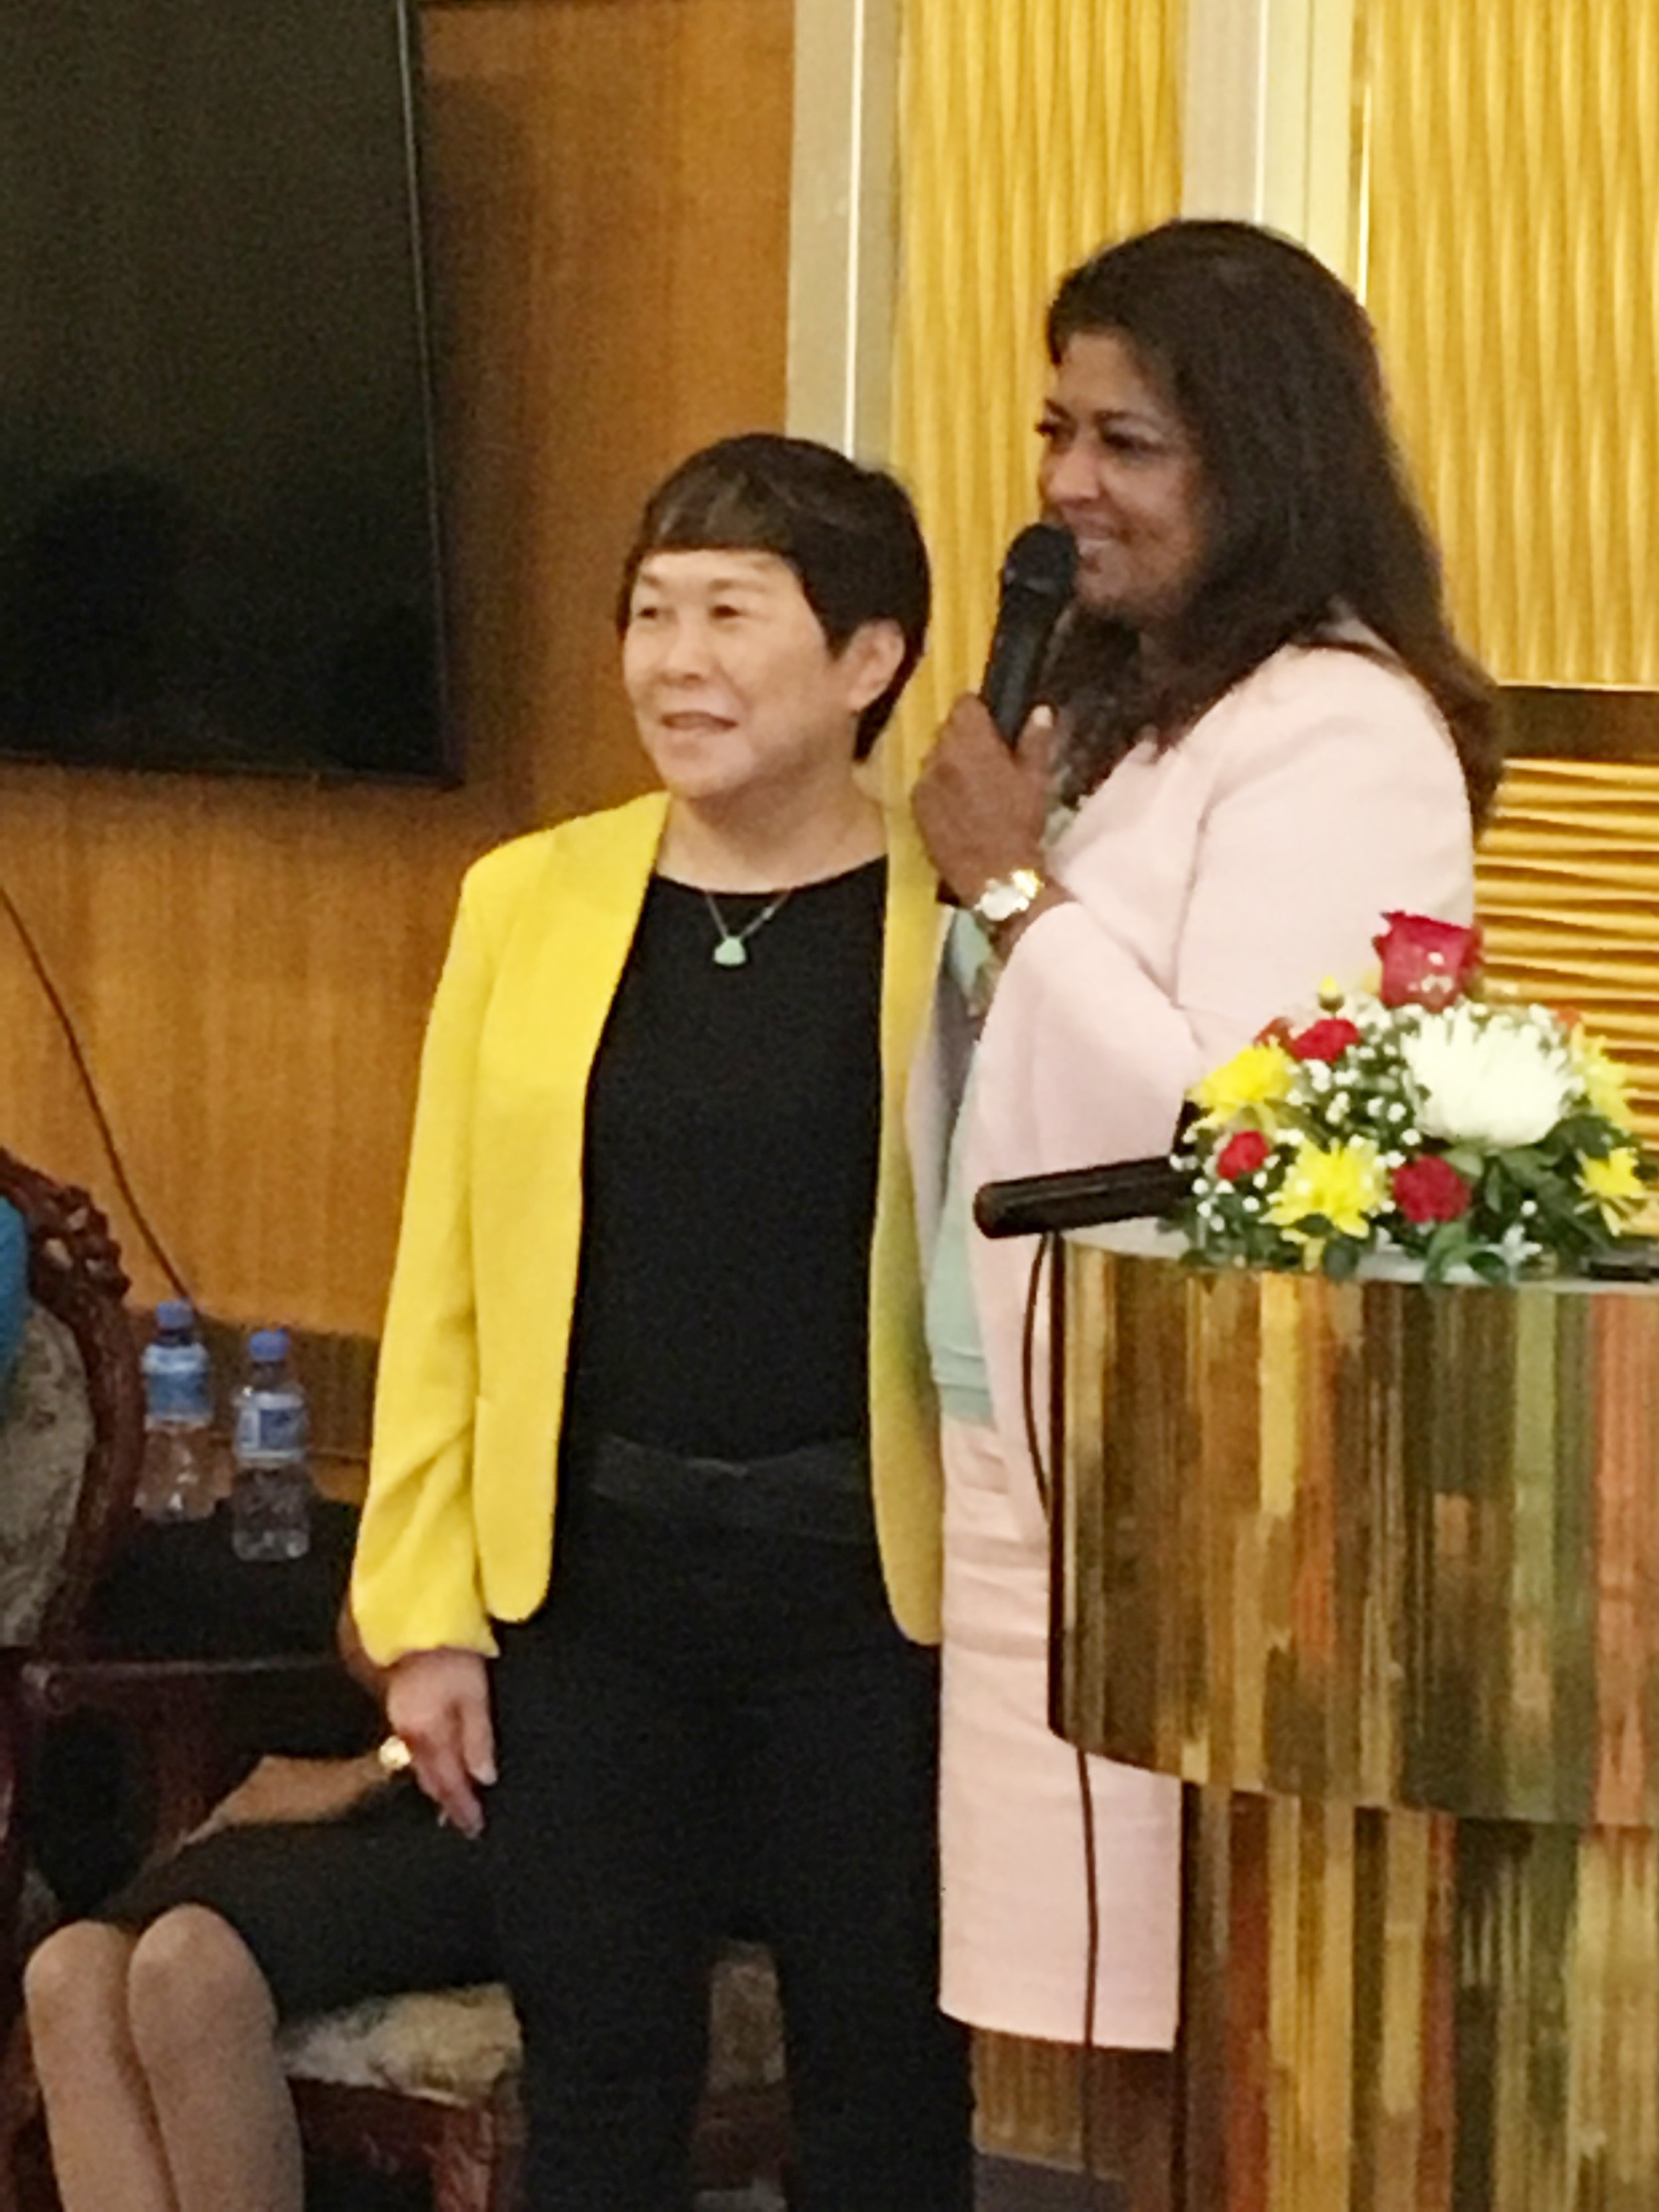 Mrs Che Jian Ping, Trustee of the Guyana Foundation and Owner of the New Thriving Restaurant with Founder of the Guyana Foundation, Supriya Singh-Bodden.